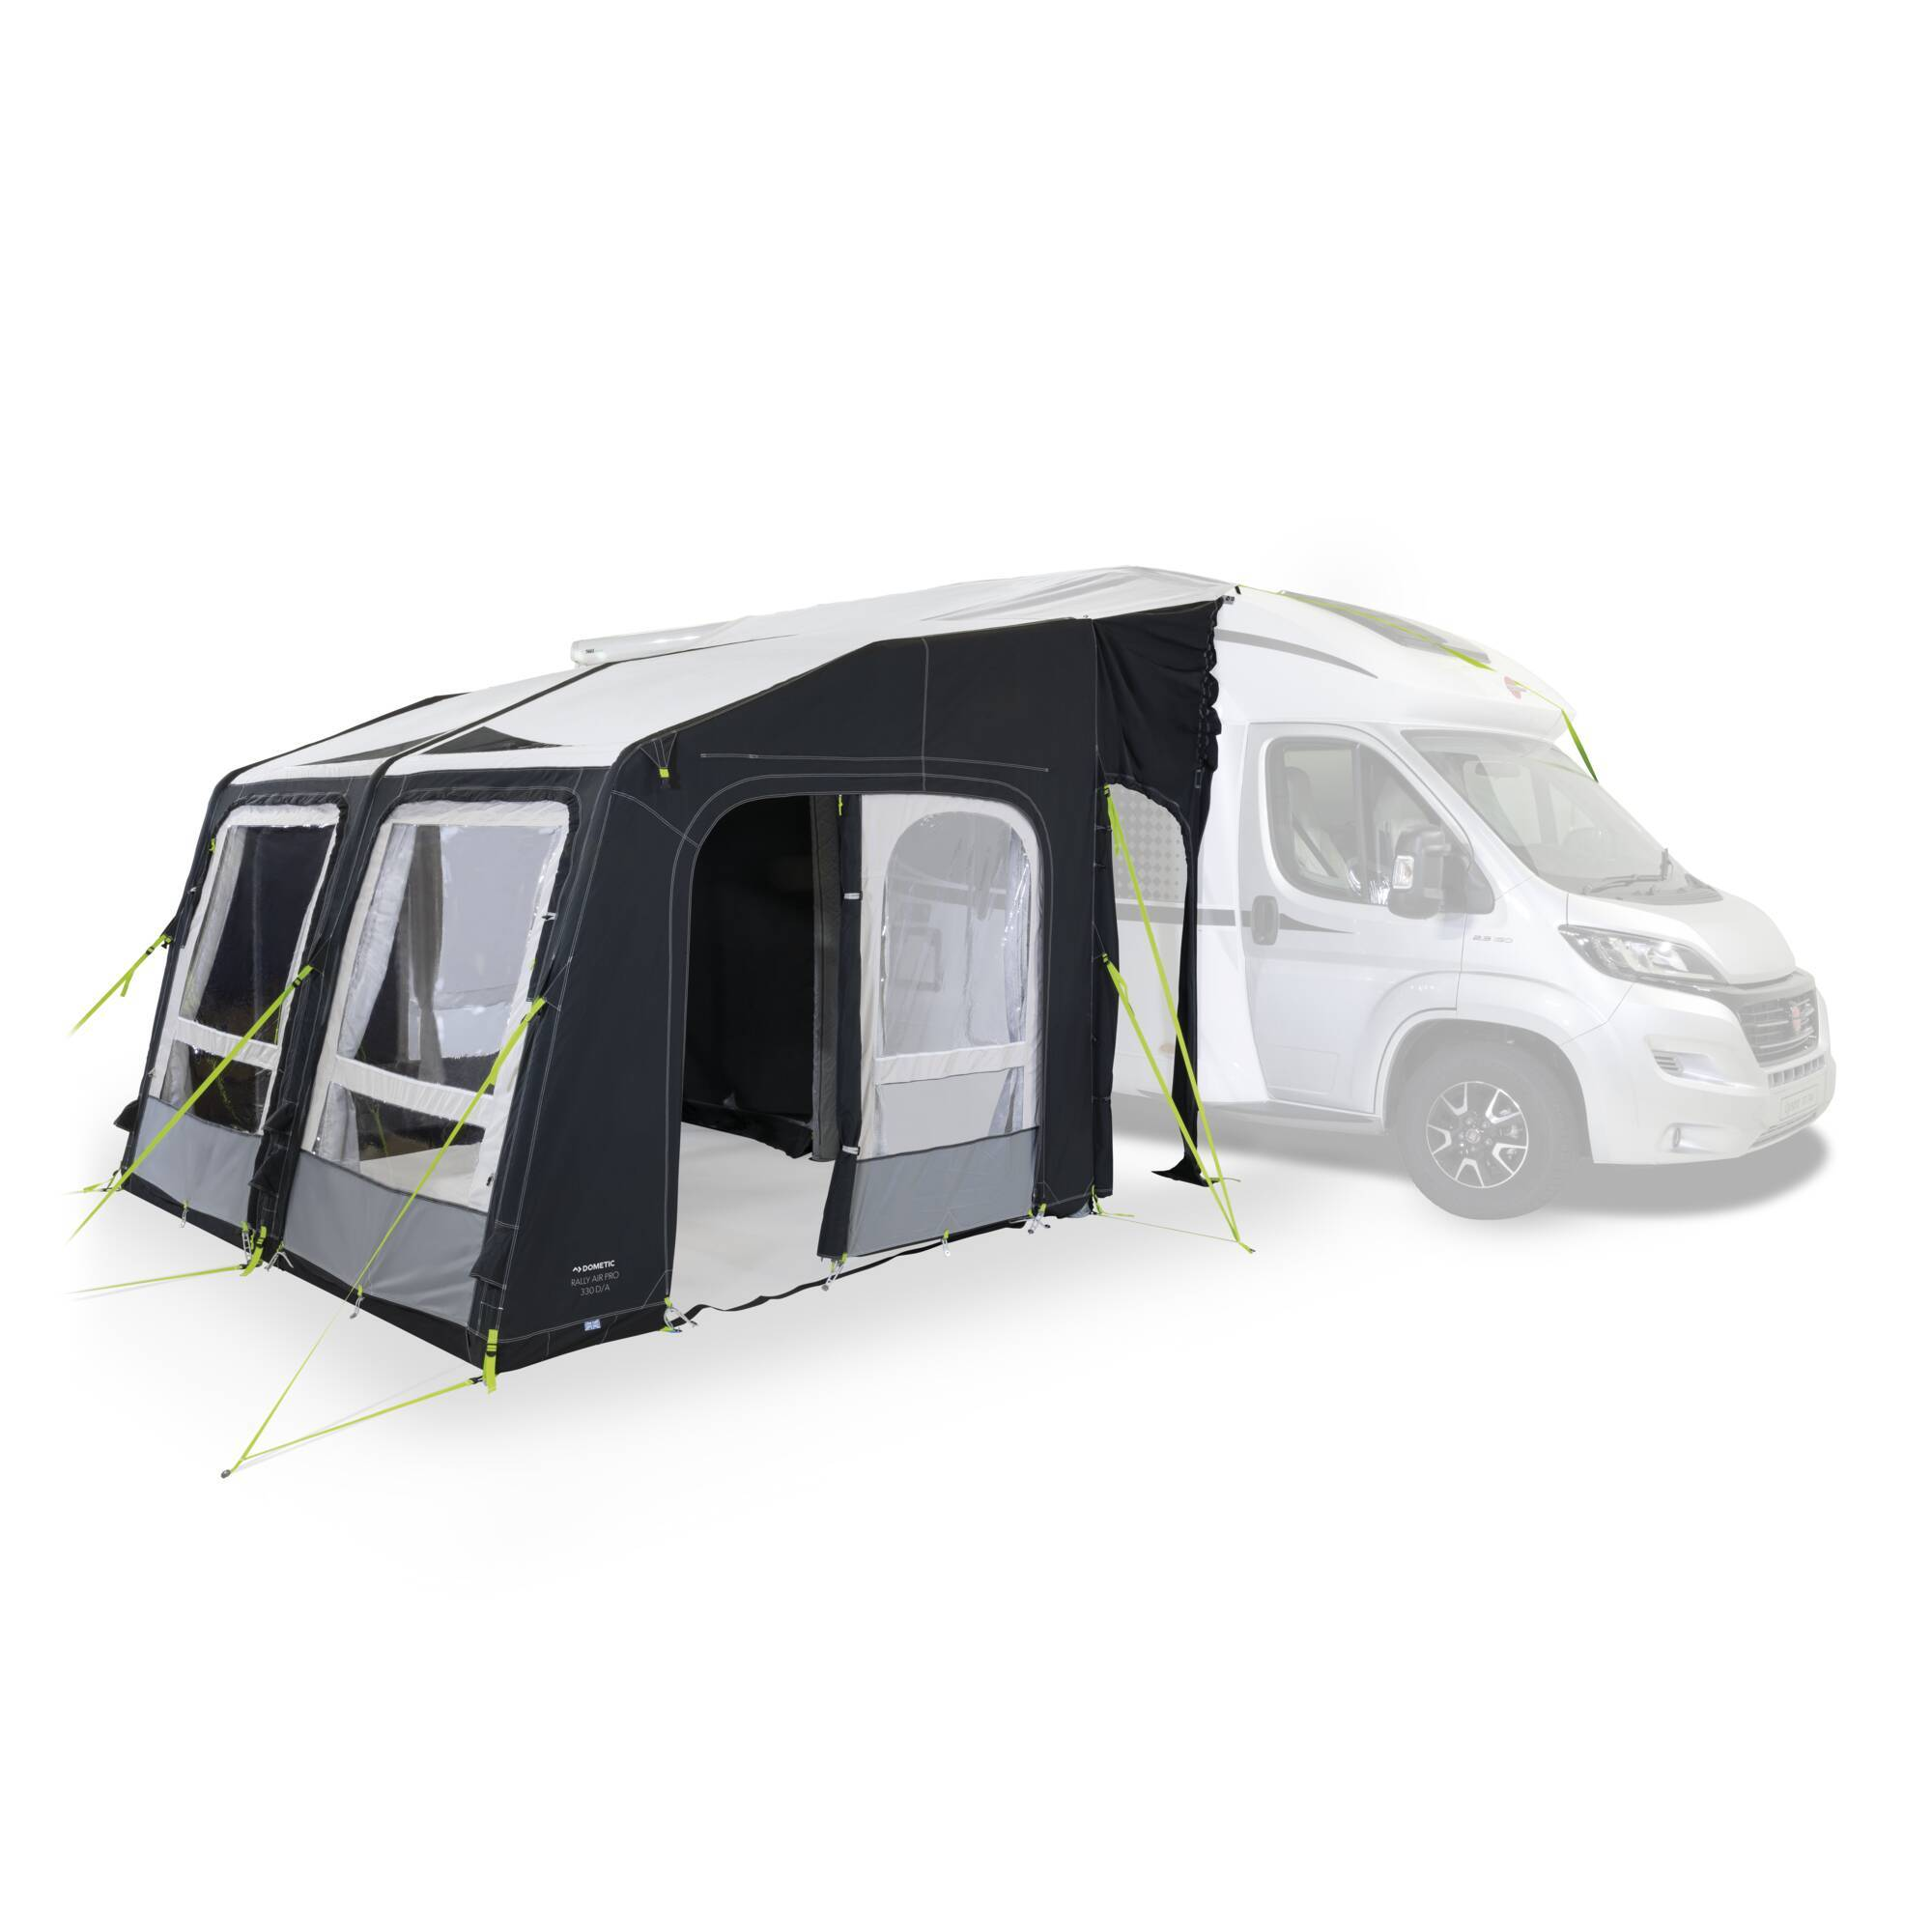 Dometic Rally 330 Driveaway Awning